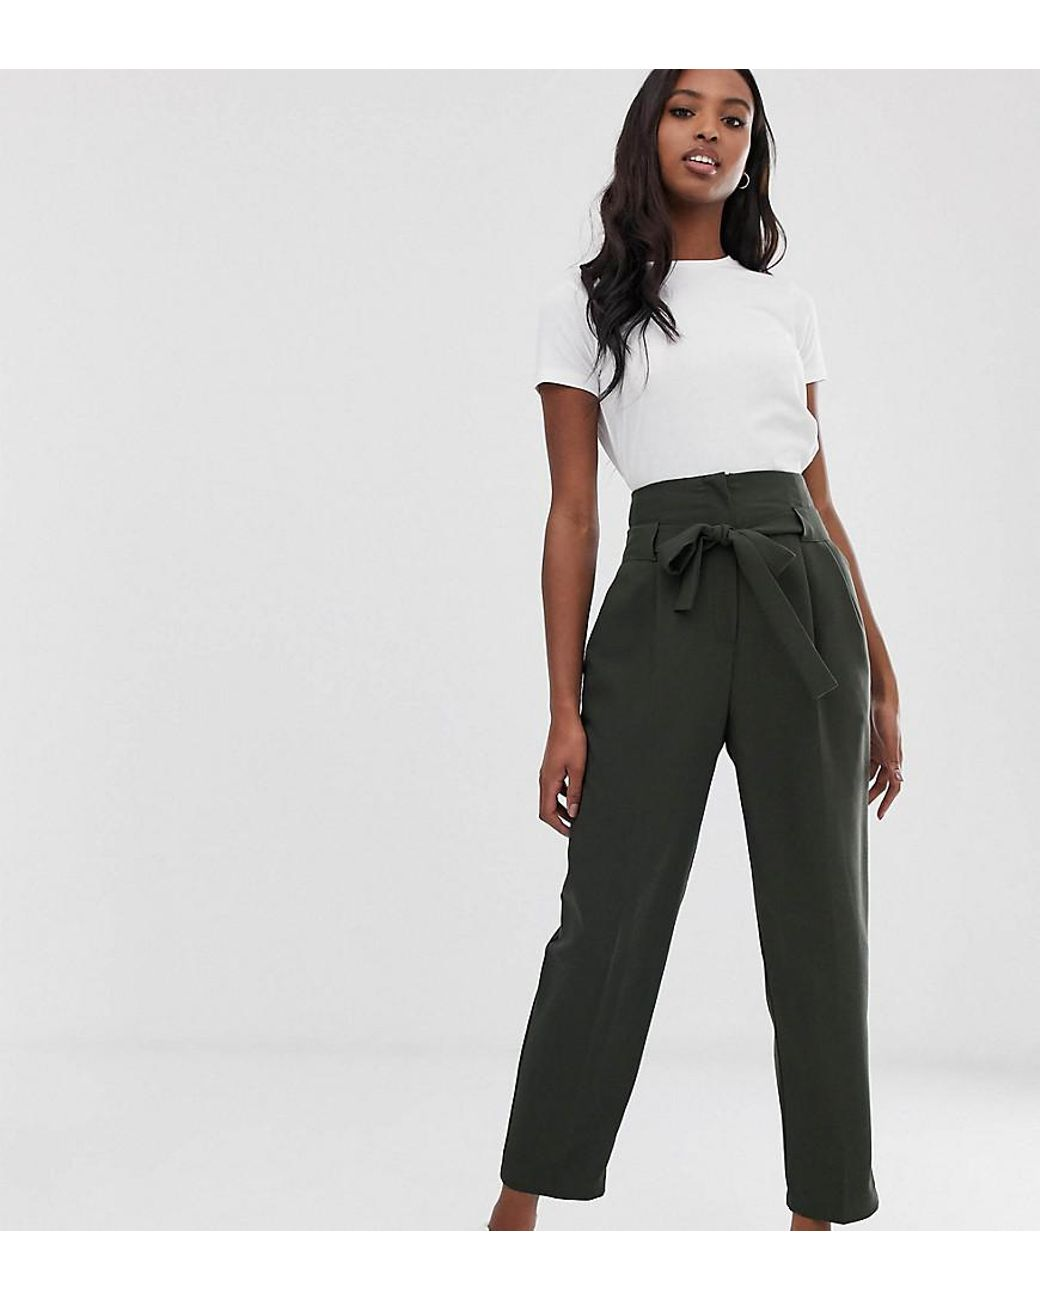 87cca5a5 ASOS Asos Design Tall Tailored Tie Waist Tapered Ankle Grazer Trousers in  Green - Lyst